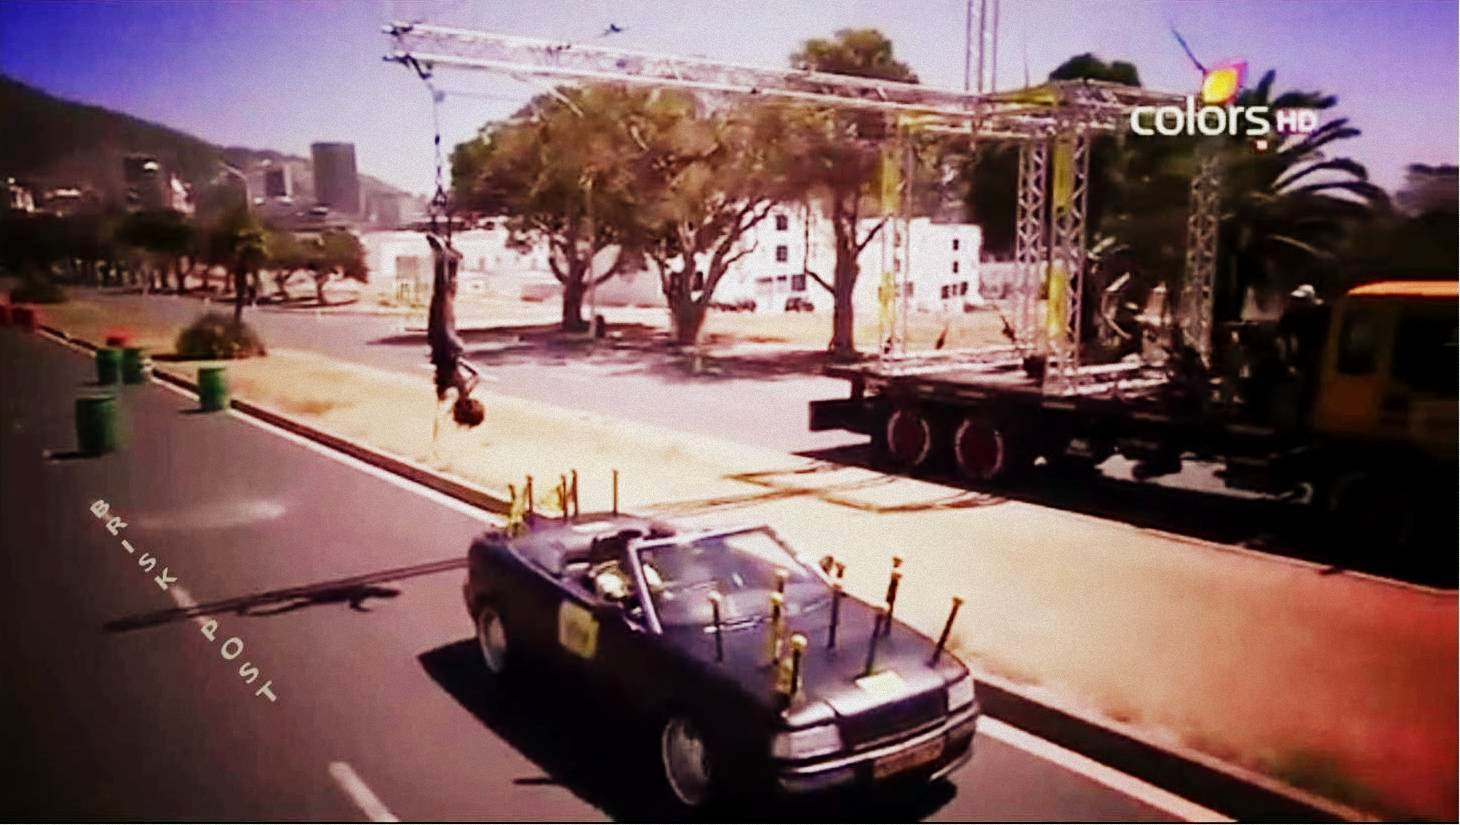 Hanging contestant collecting flags from slowly running car on street in Fear Factor Khatron Ke Khiladi